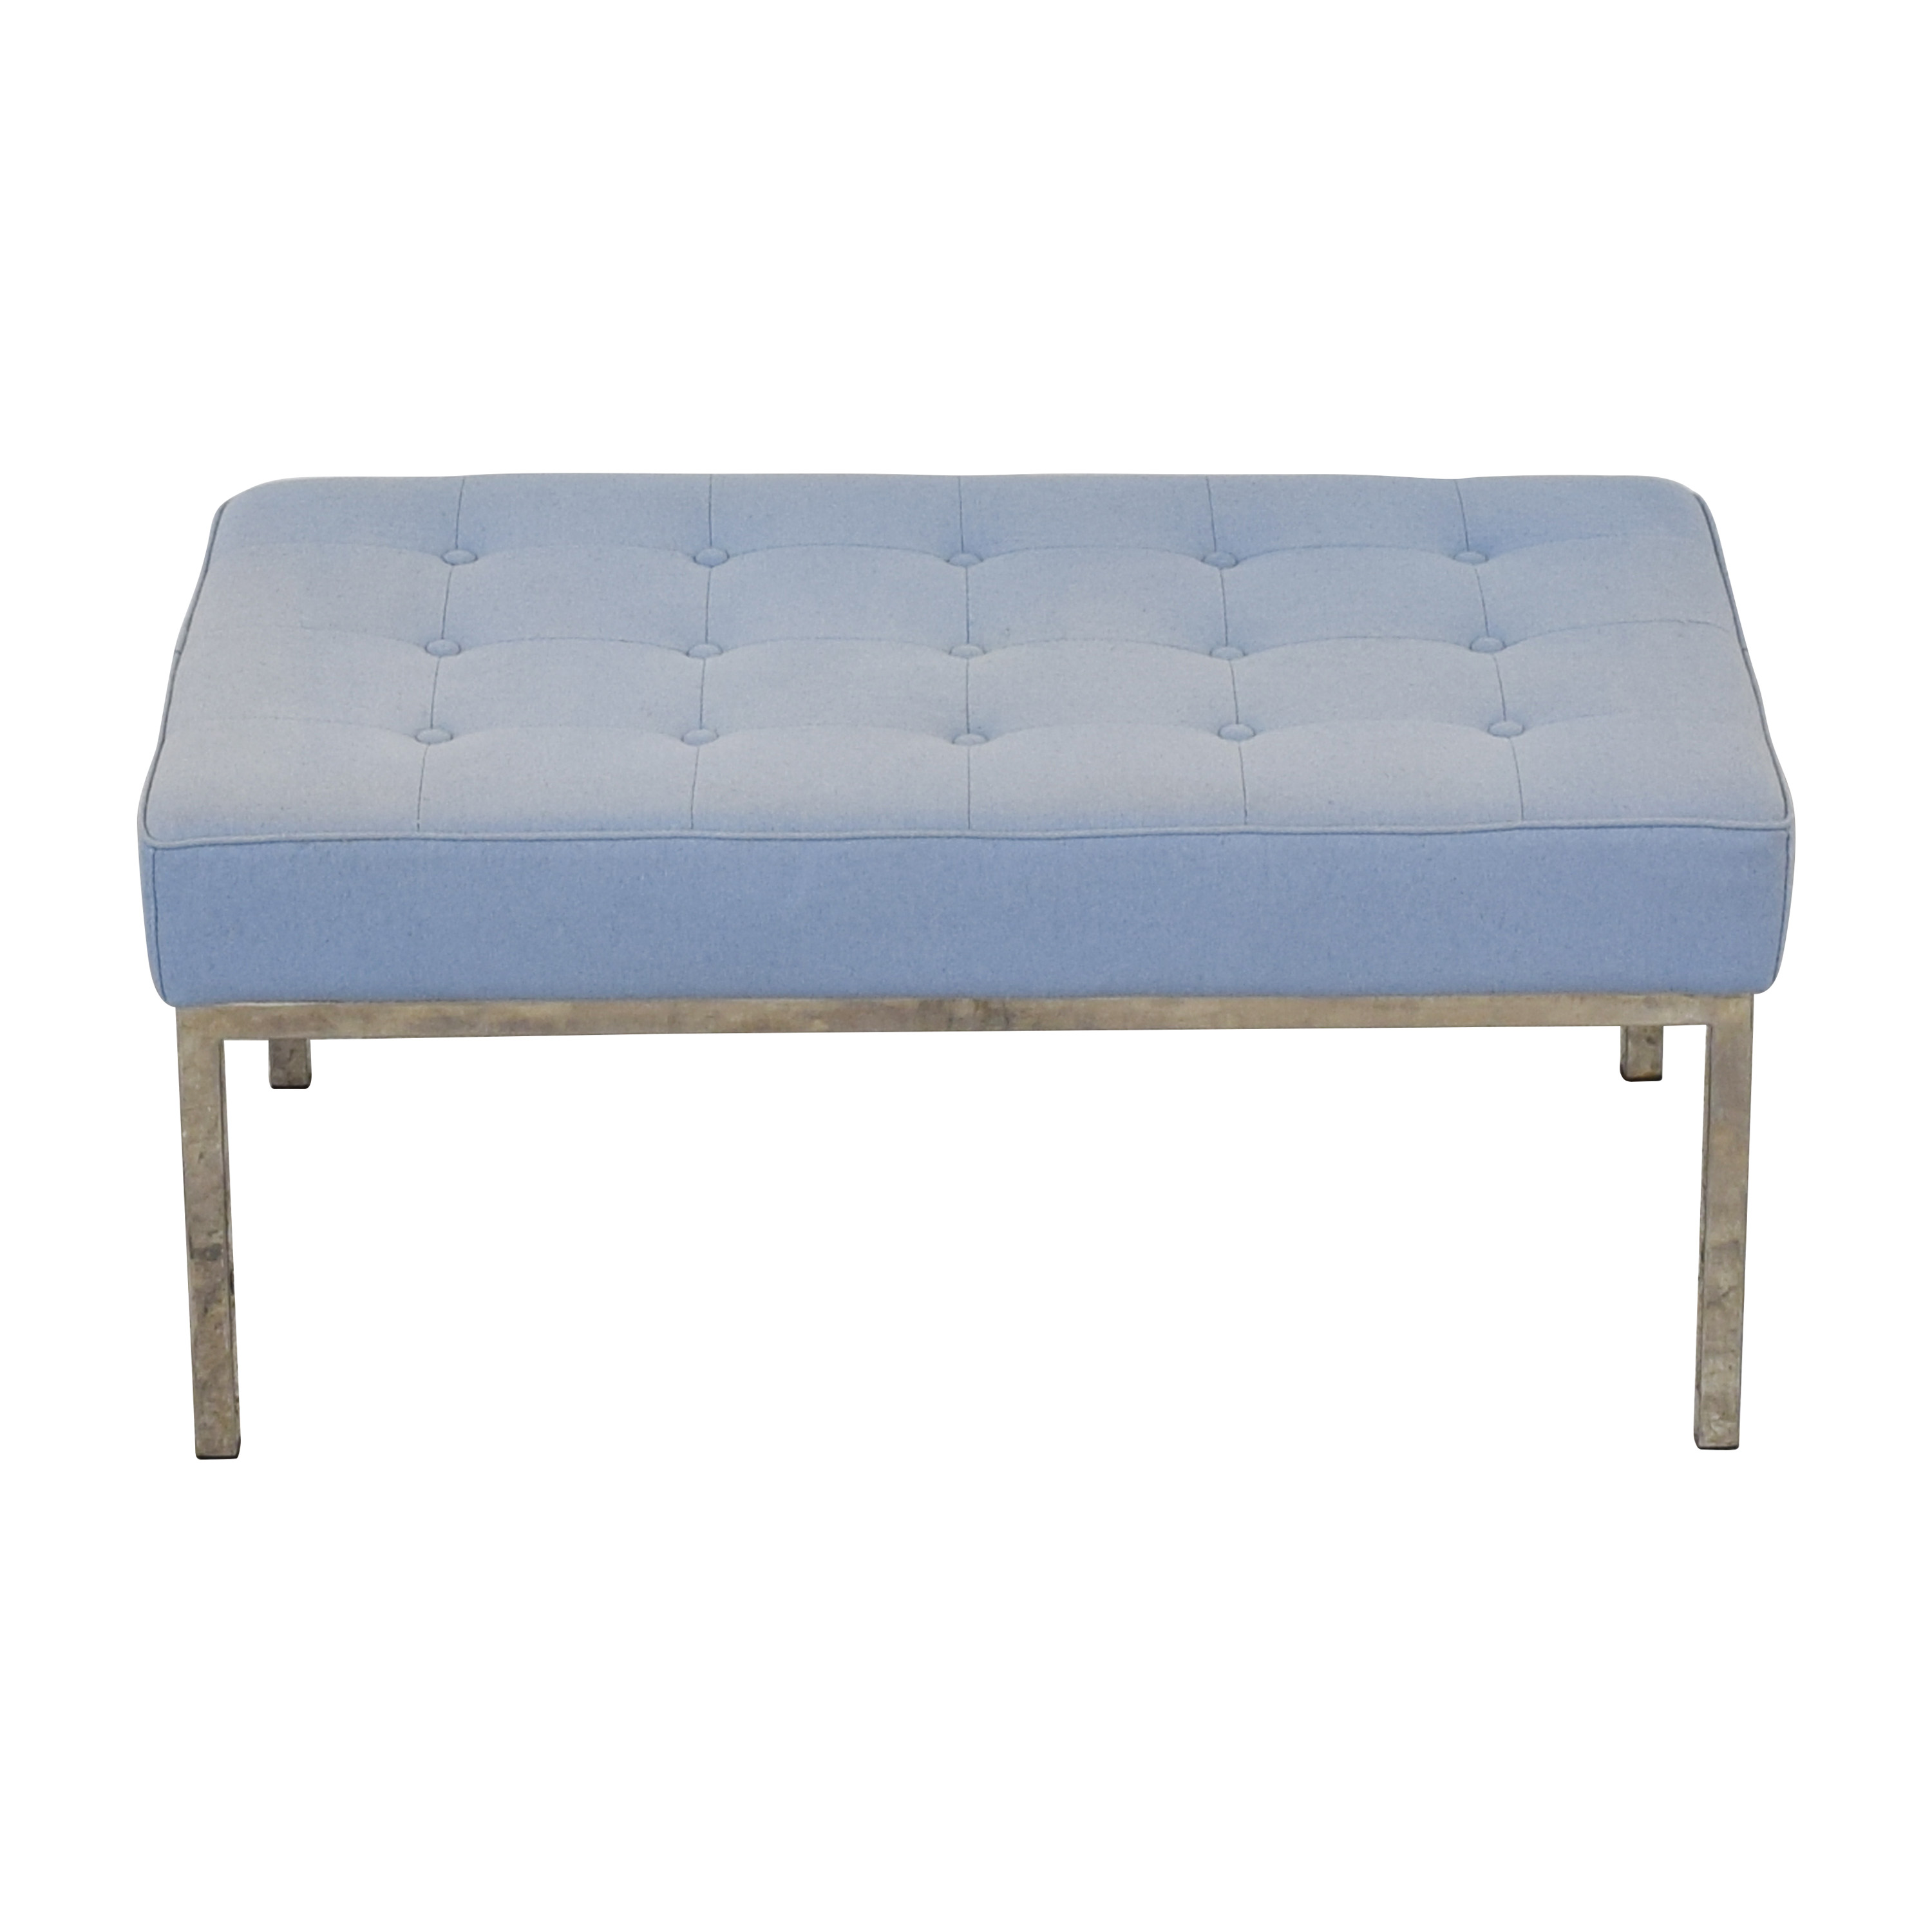 Rove Concepts Rove Concepts Mid Century Tufted Bench Benches